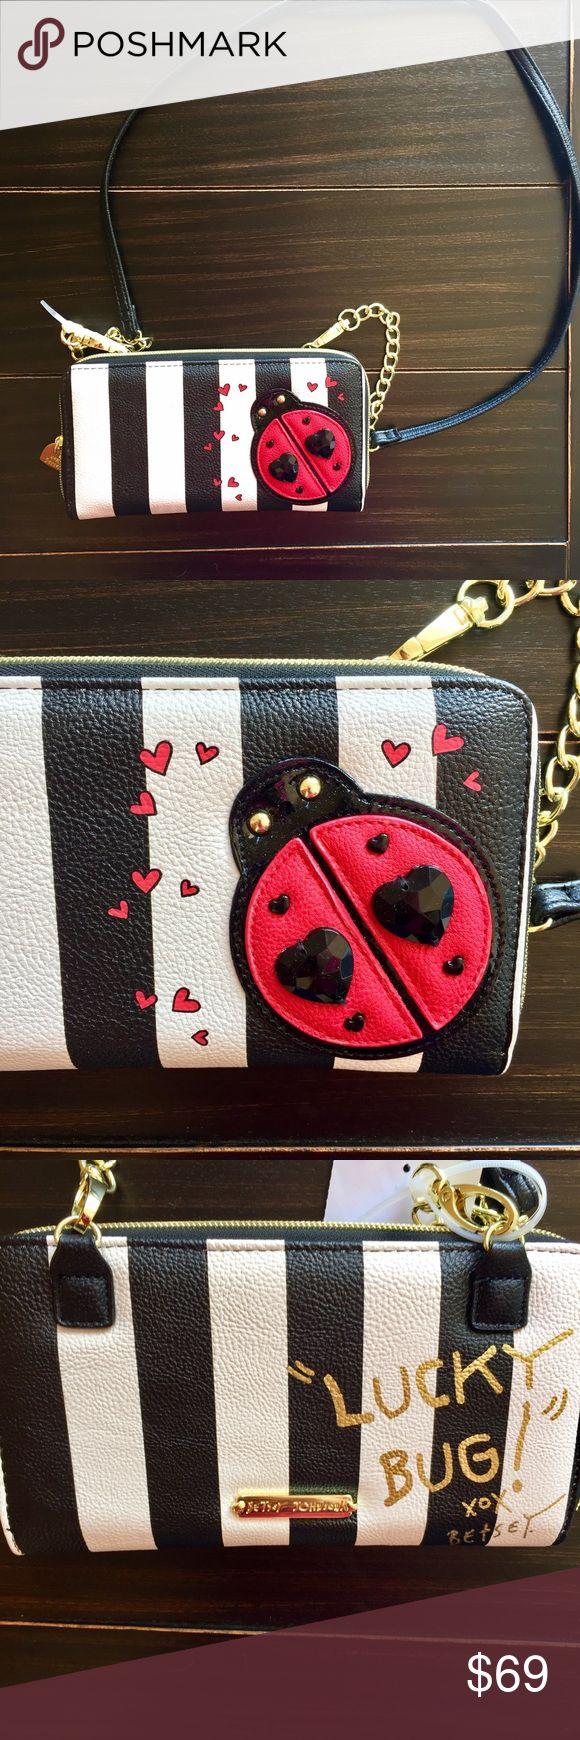 "Betsey Johnson Ladybug Wallet on String Crossbody Betsey Johnson Ladybug Wallet on a String Crossbody Bag - Unique Design features ID Window, Zippered middle Compartment, 12 Credit Card Slots and 2 slip pockets. Gorgeous stripes and ladybug with studs and jewel embellishments.    Wallet with Removable Crossbody Strap Zip-around closure with signature logo heart-shaped zipper pull  Exterior Rear is written in metallic gold, ""Lucky Bug!"" and ""xox Betsey"" Removable partial chain crossbody…"